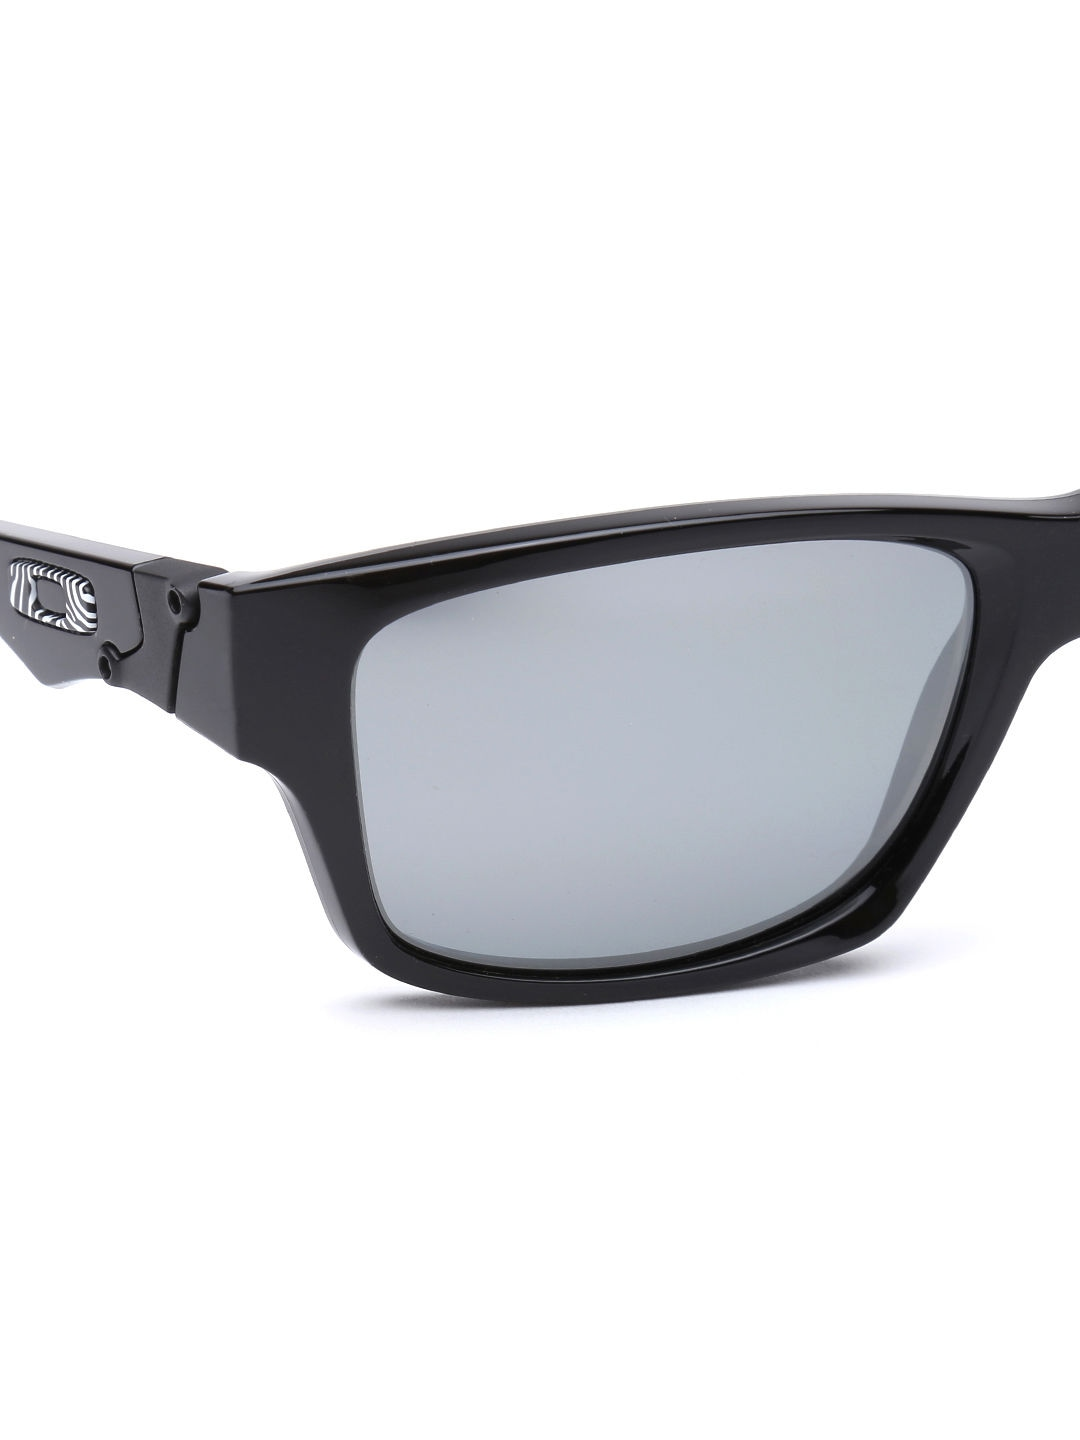 mens wayfarer sunglasses 58qg  mens wayfarer sunglasses